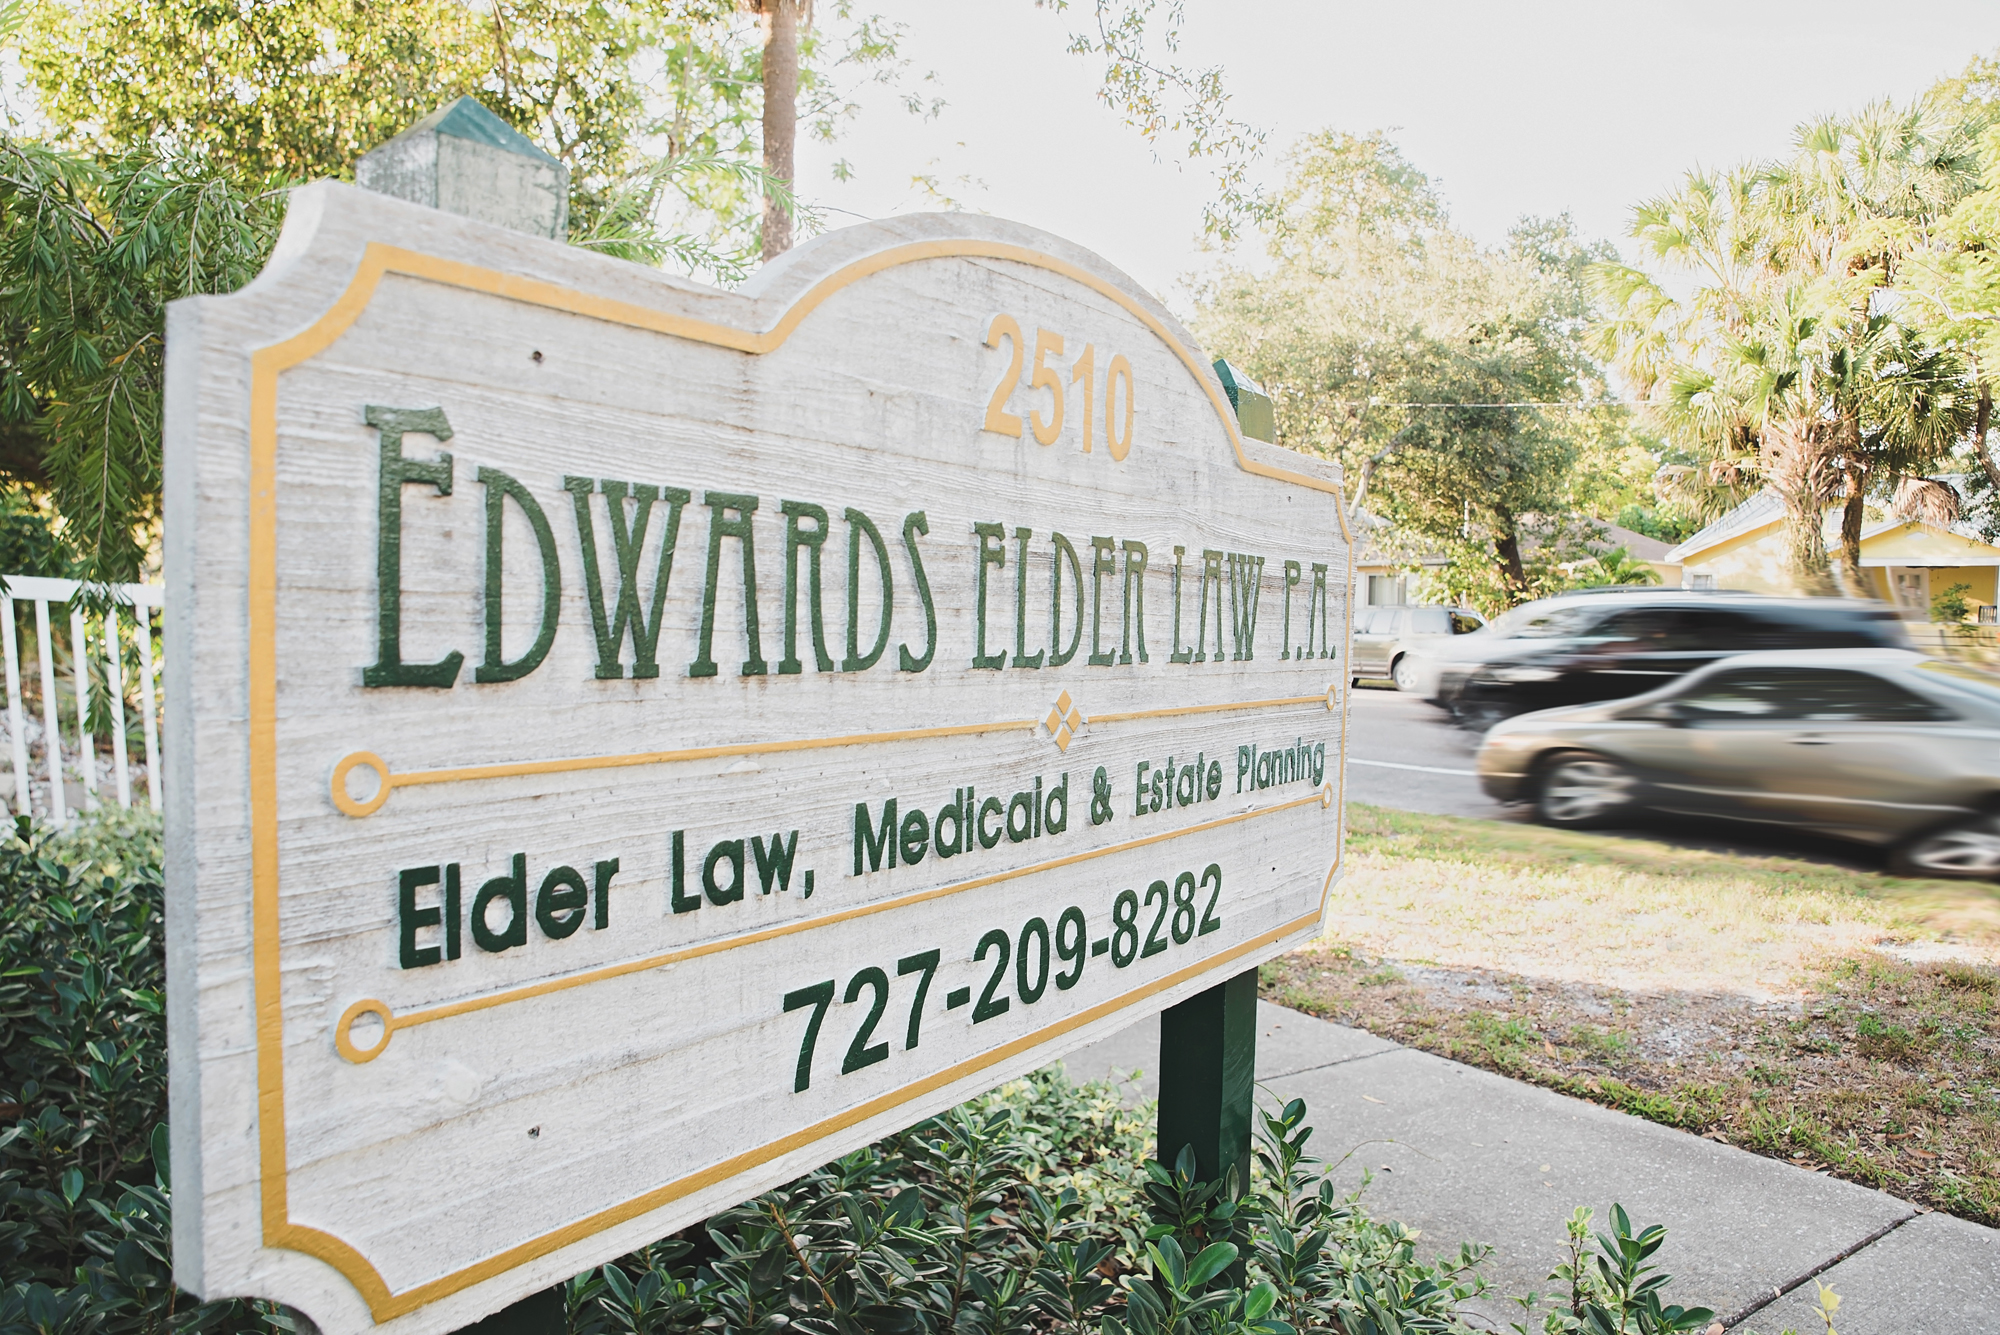 Edwards Elder Law - St Petersburg